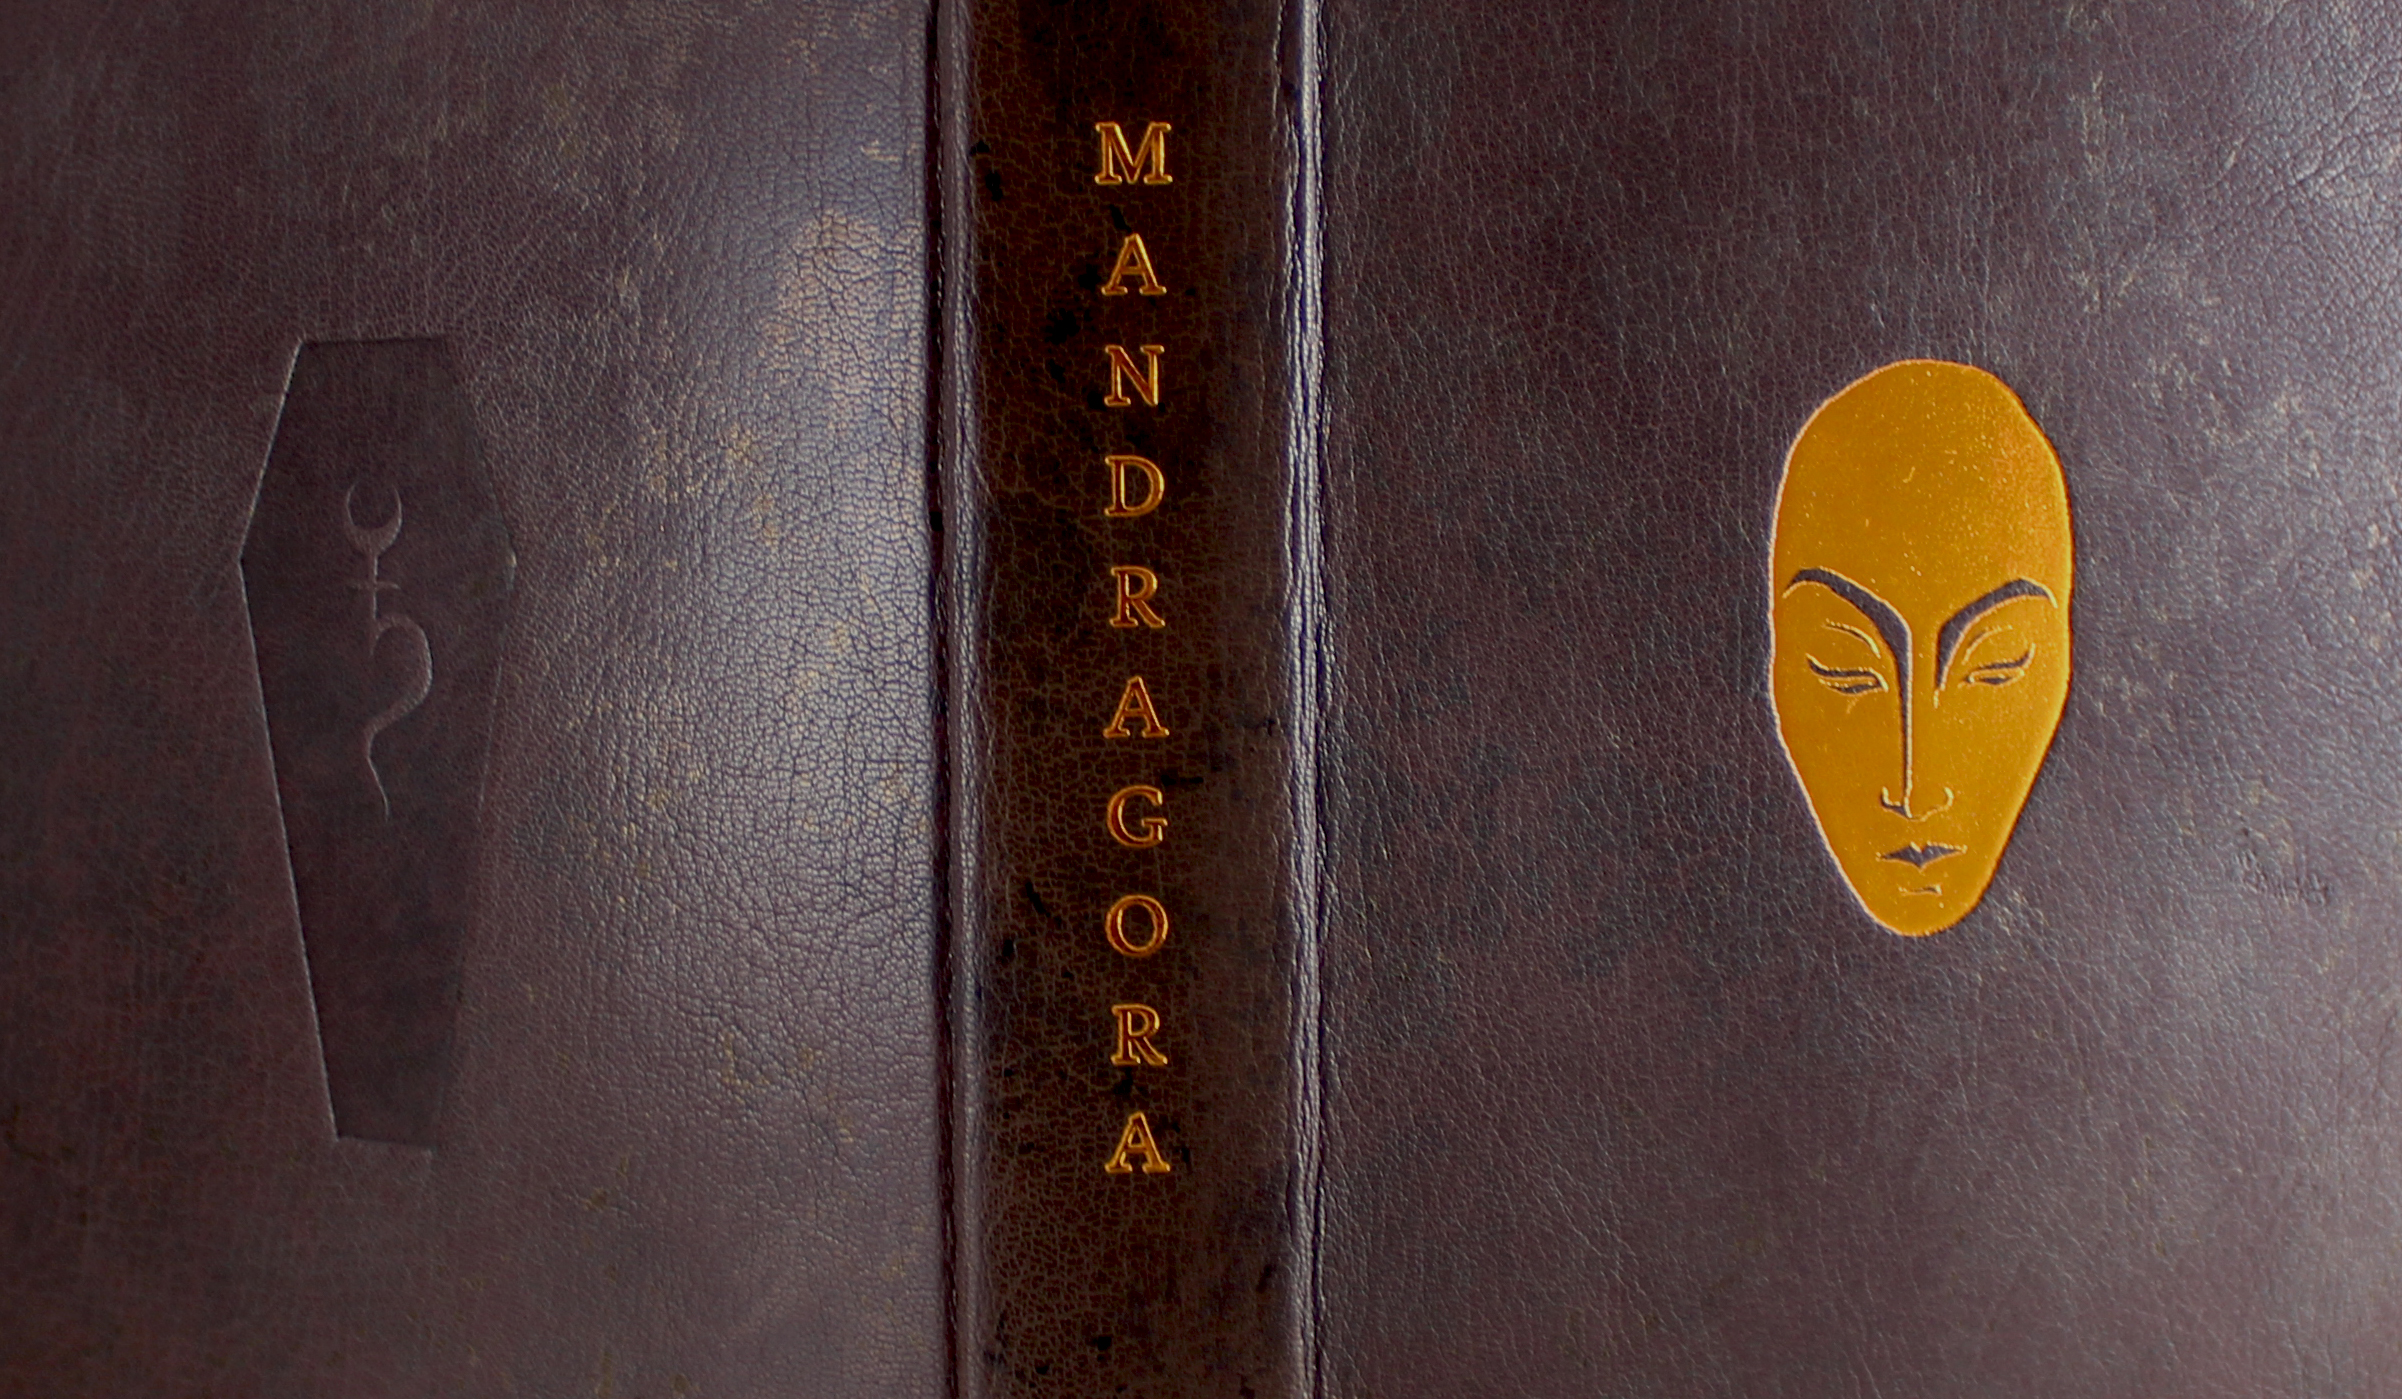 The fine edition – Mandragora countenance and coffin